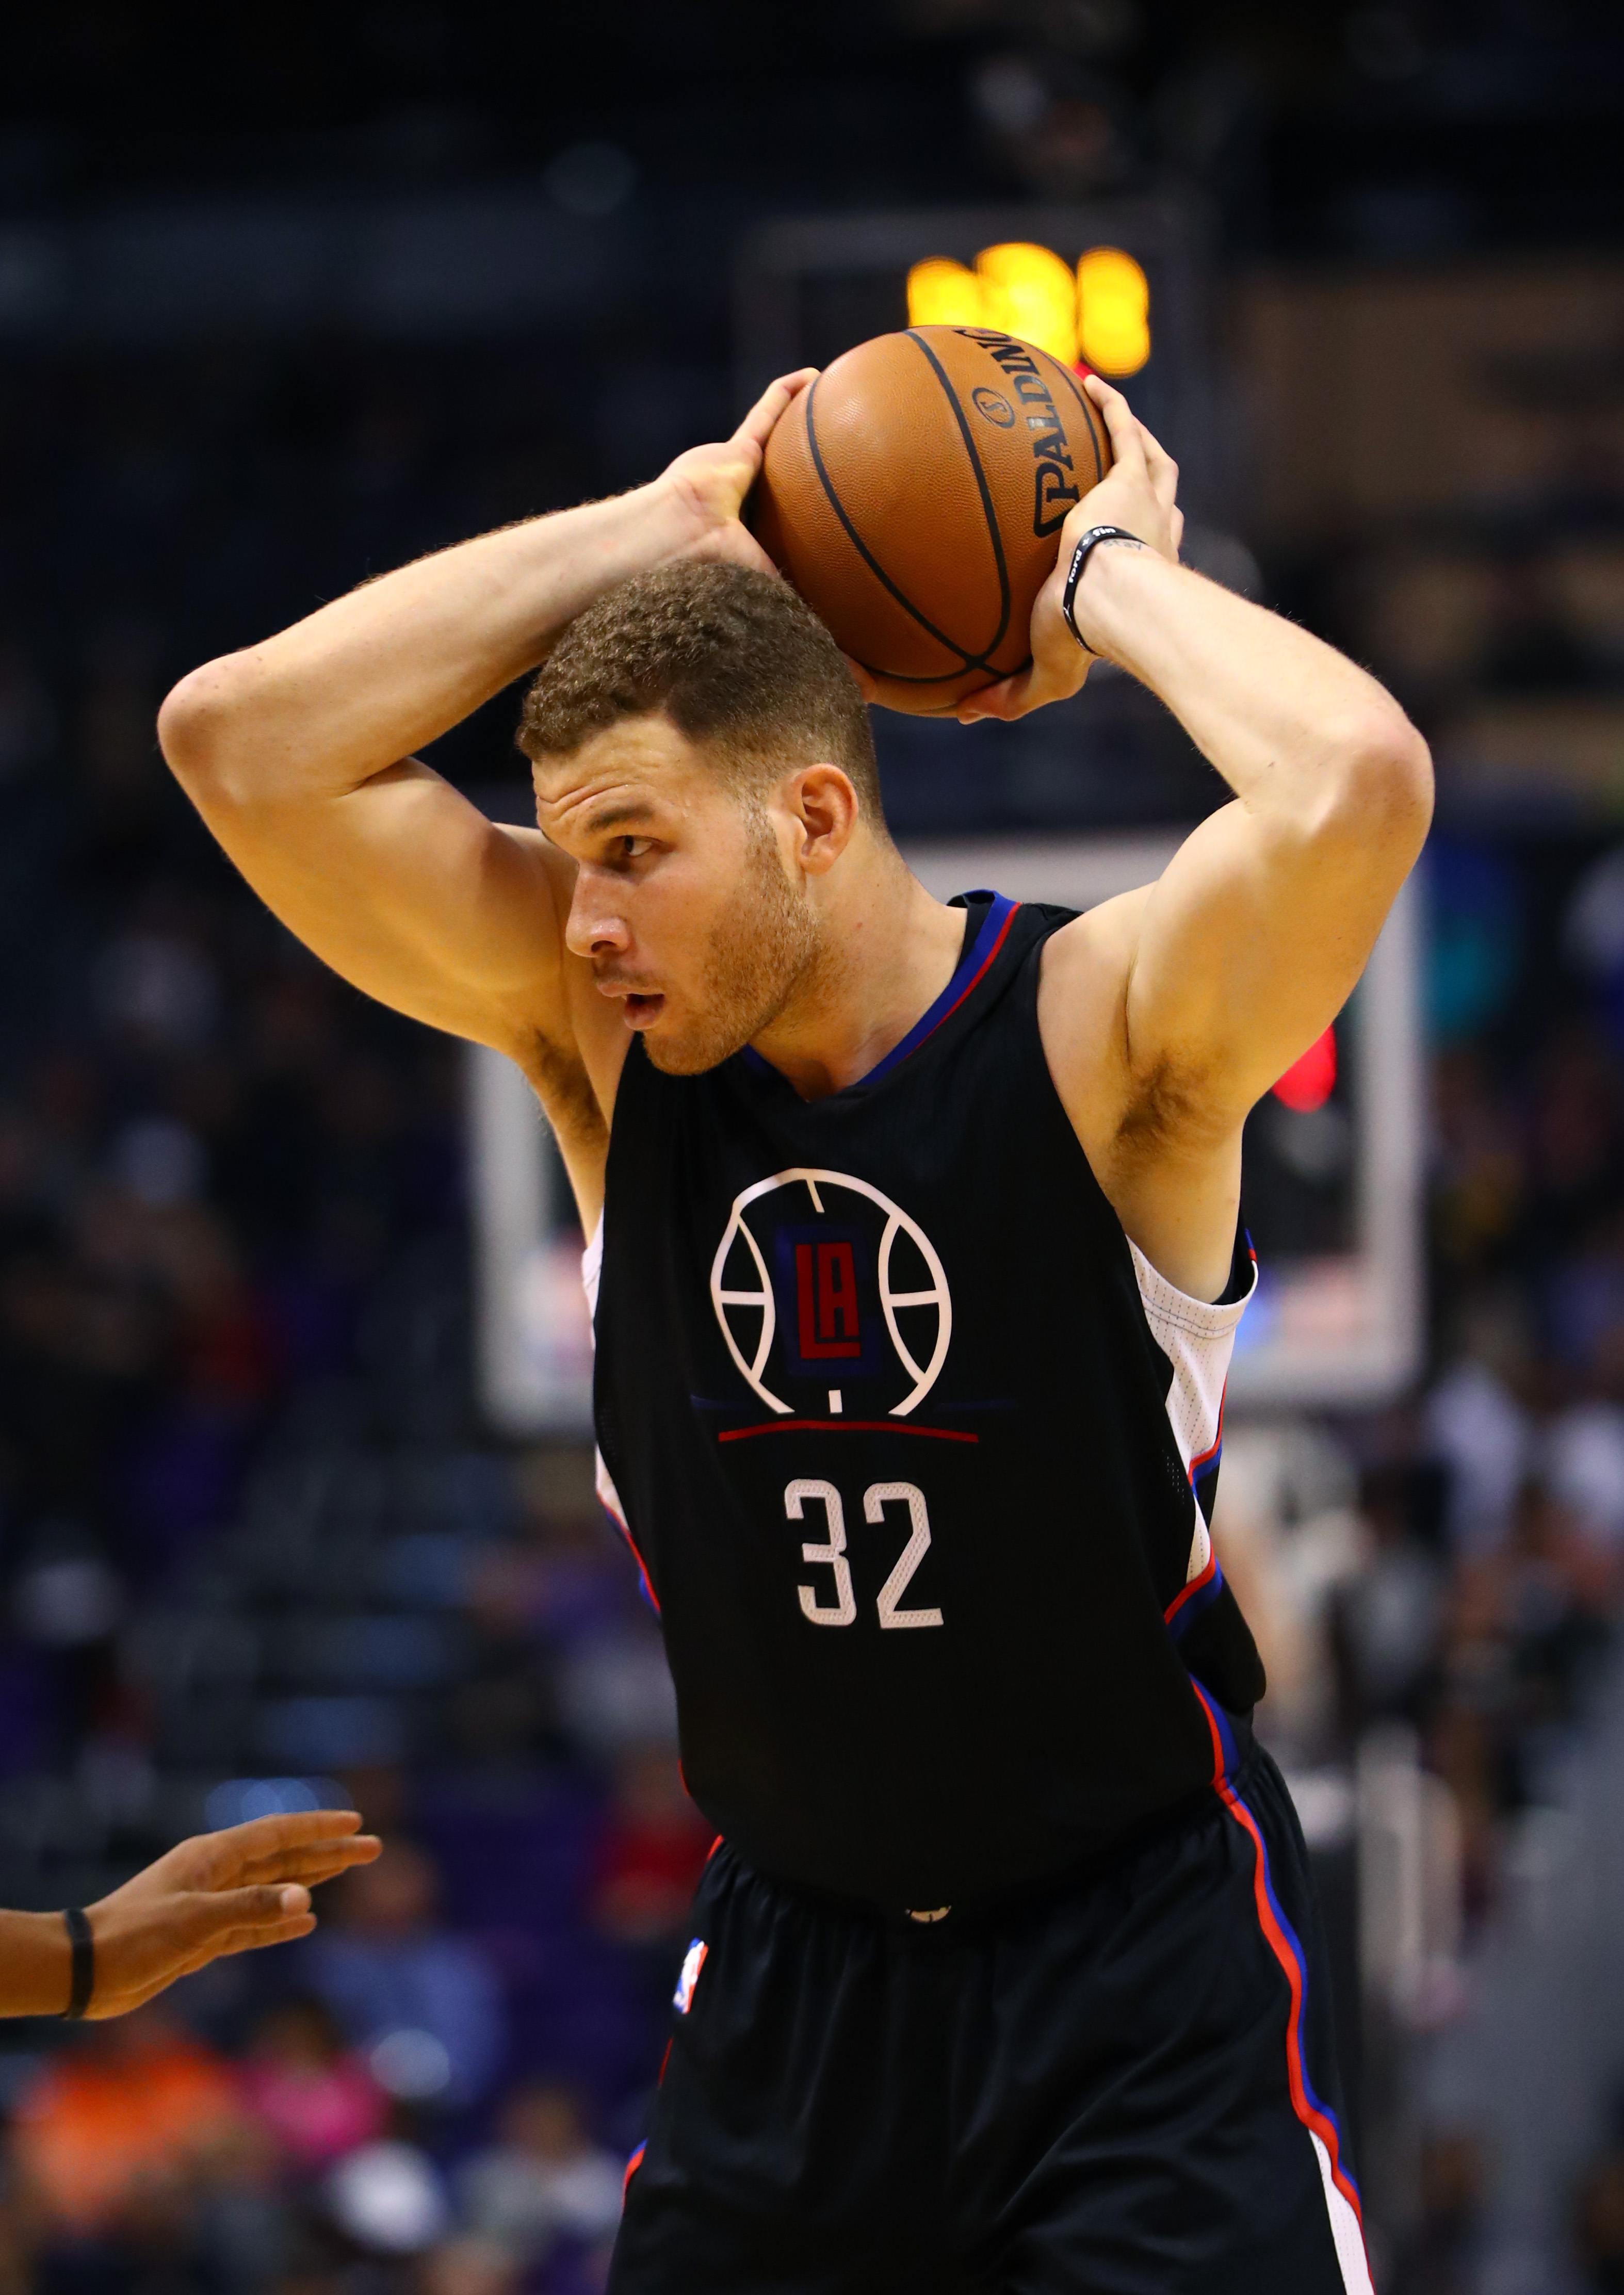 The Morning After: Clippers vs Suns, Blake Griffin Shines